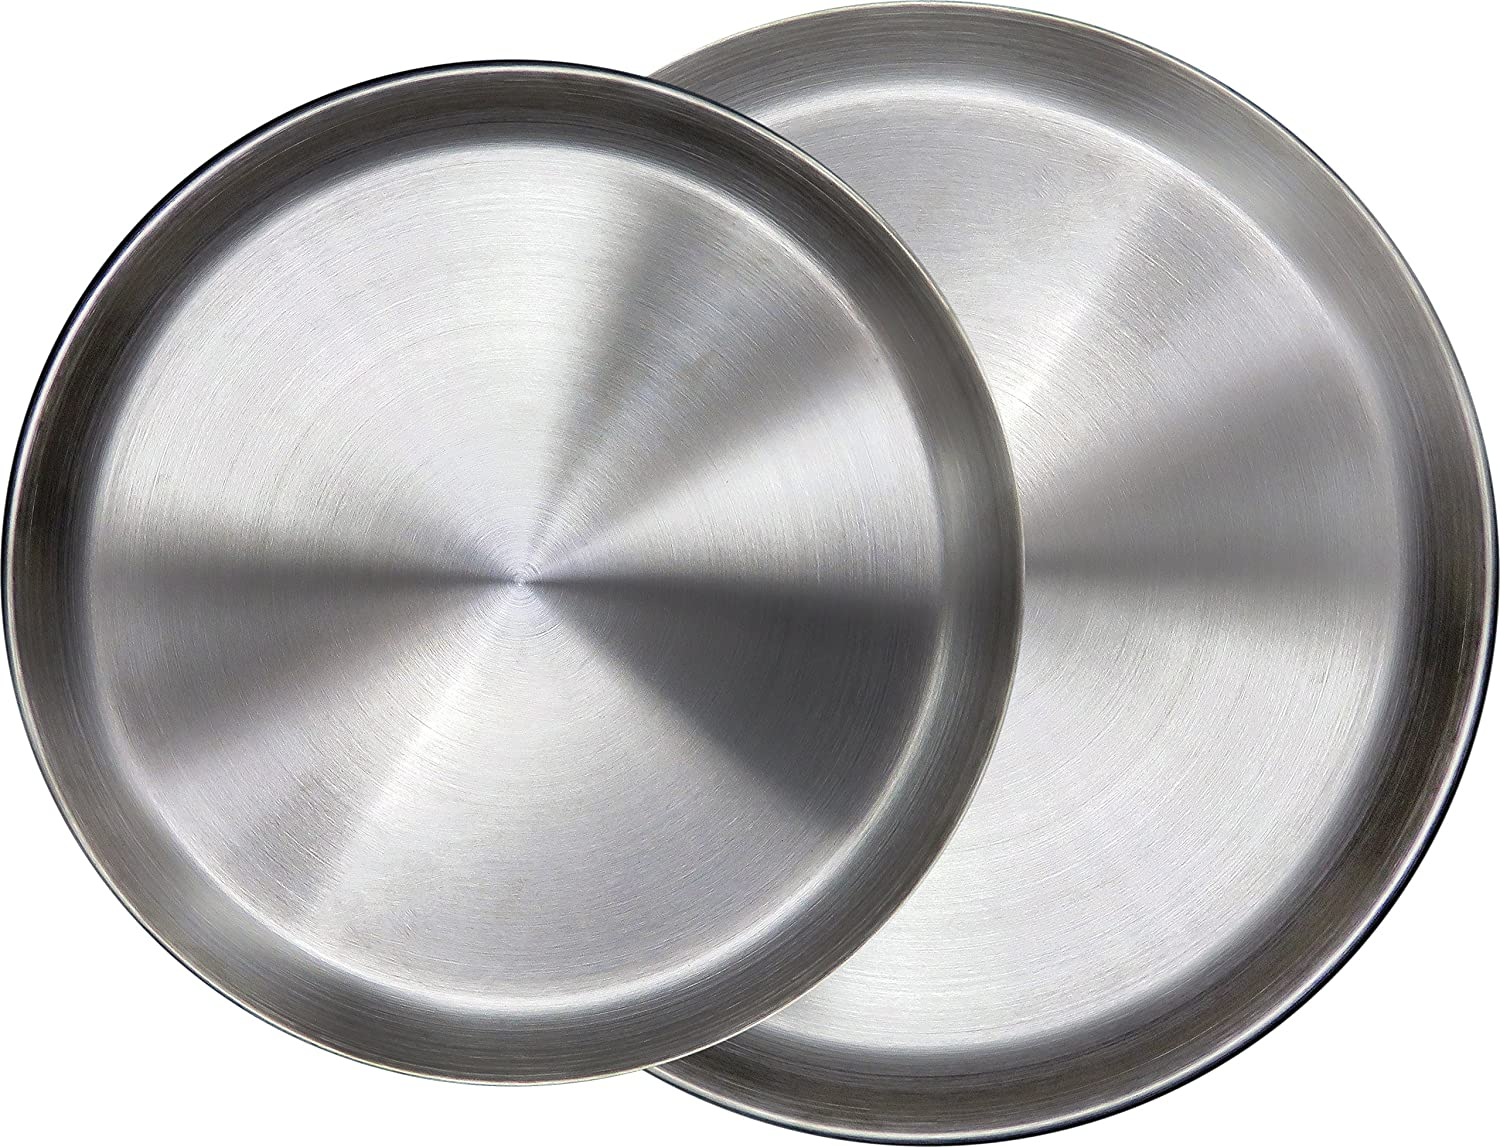 """Immokaz Matte Polished 12.0 inch 304 Stainless Steel Round Plates Dish, for Dinner Plate, Camping Outdoor Plate, Baby safe, Toddler, Kids, BPA Free (1-Pack) (L (12.0""""))"""